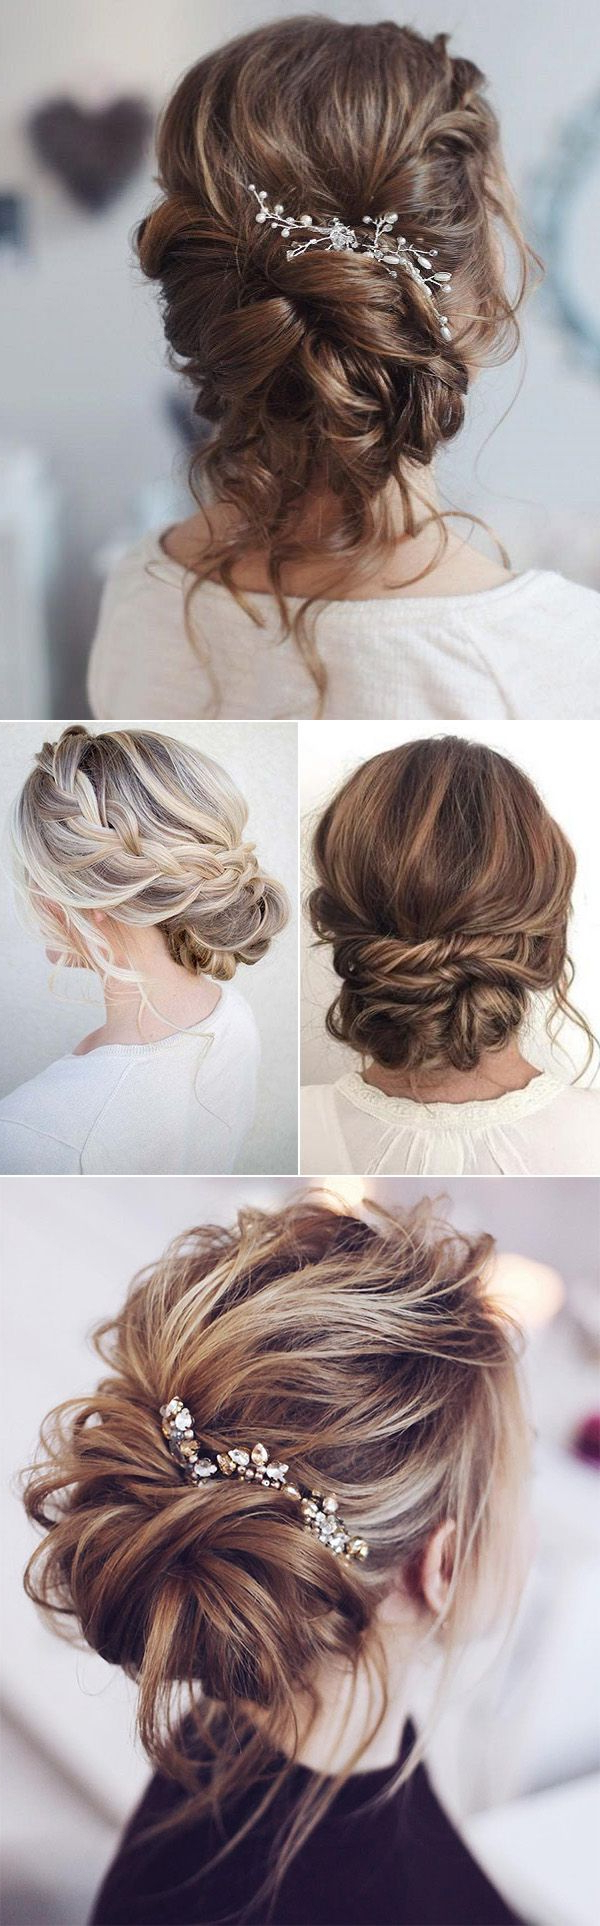 25 Drop Dead Bridal Updo Hairstyles Ideas For Any Wedding Venues Inside Most Up To Date Subtle Curls And Bun Hairstyles For Wedding (View 2 of 20)